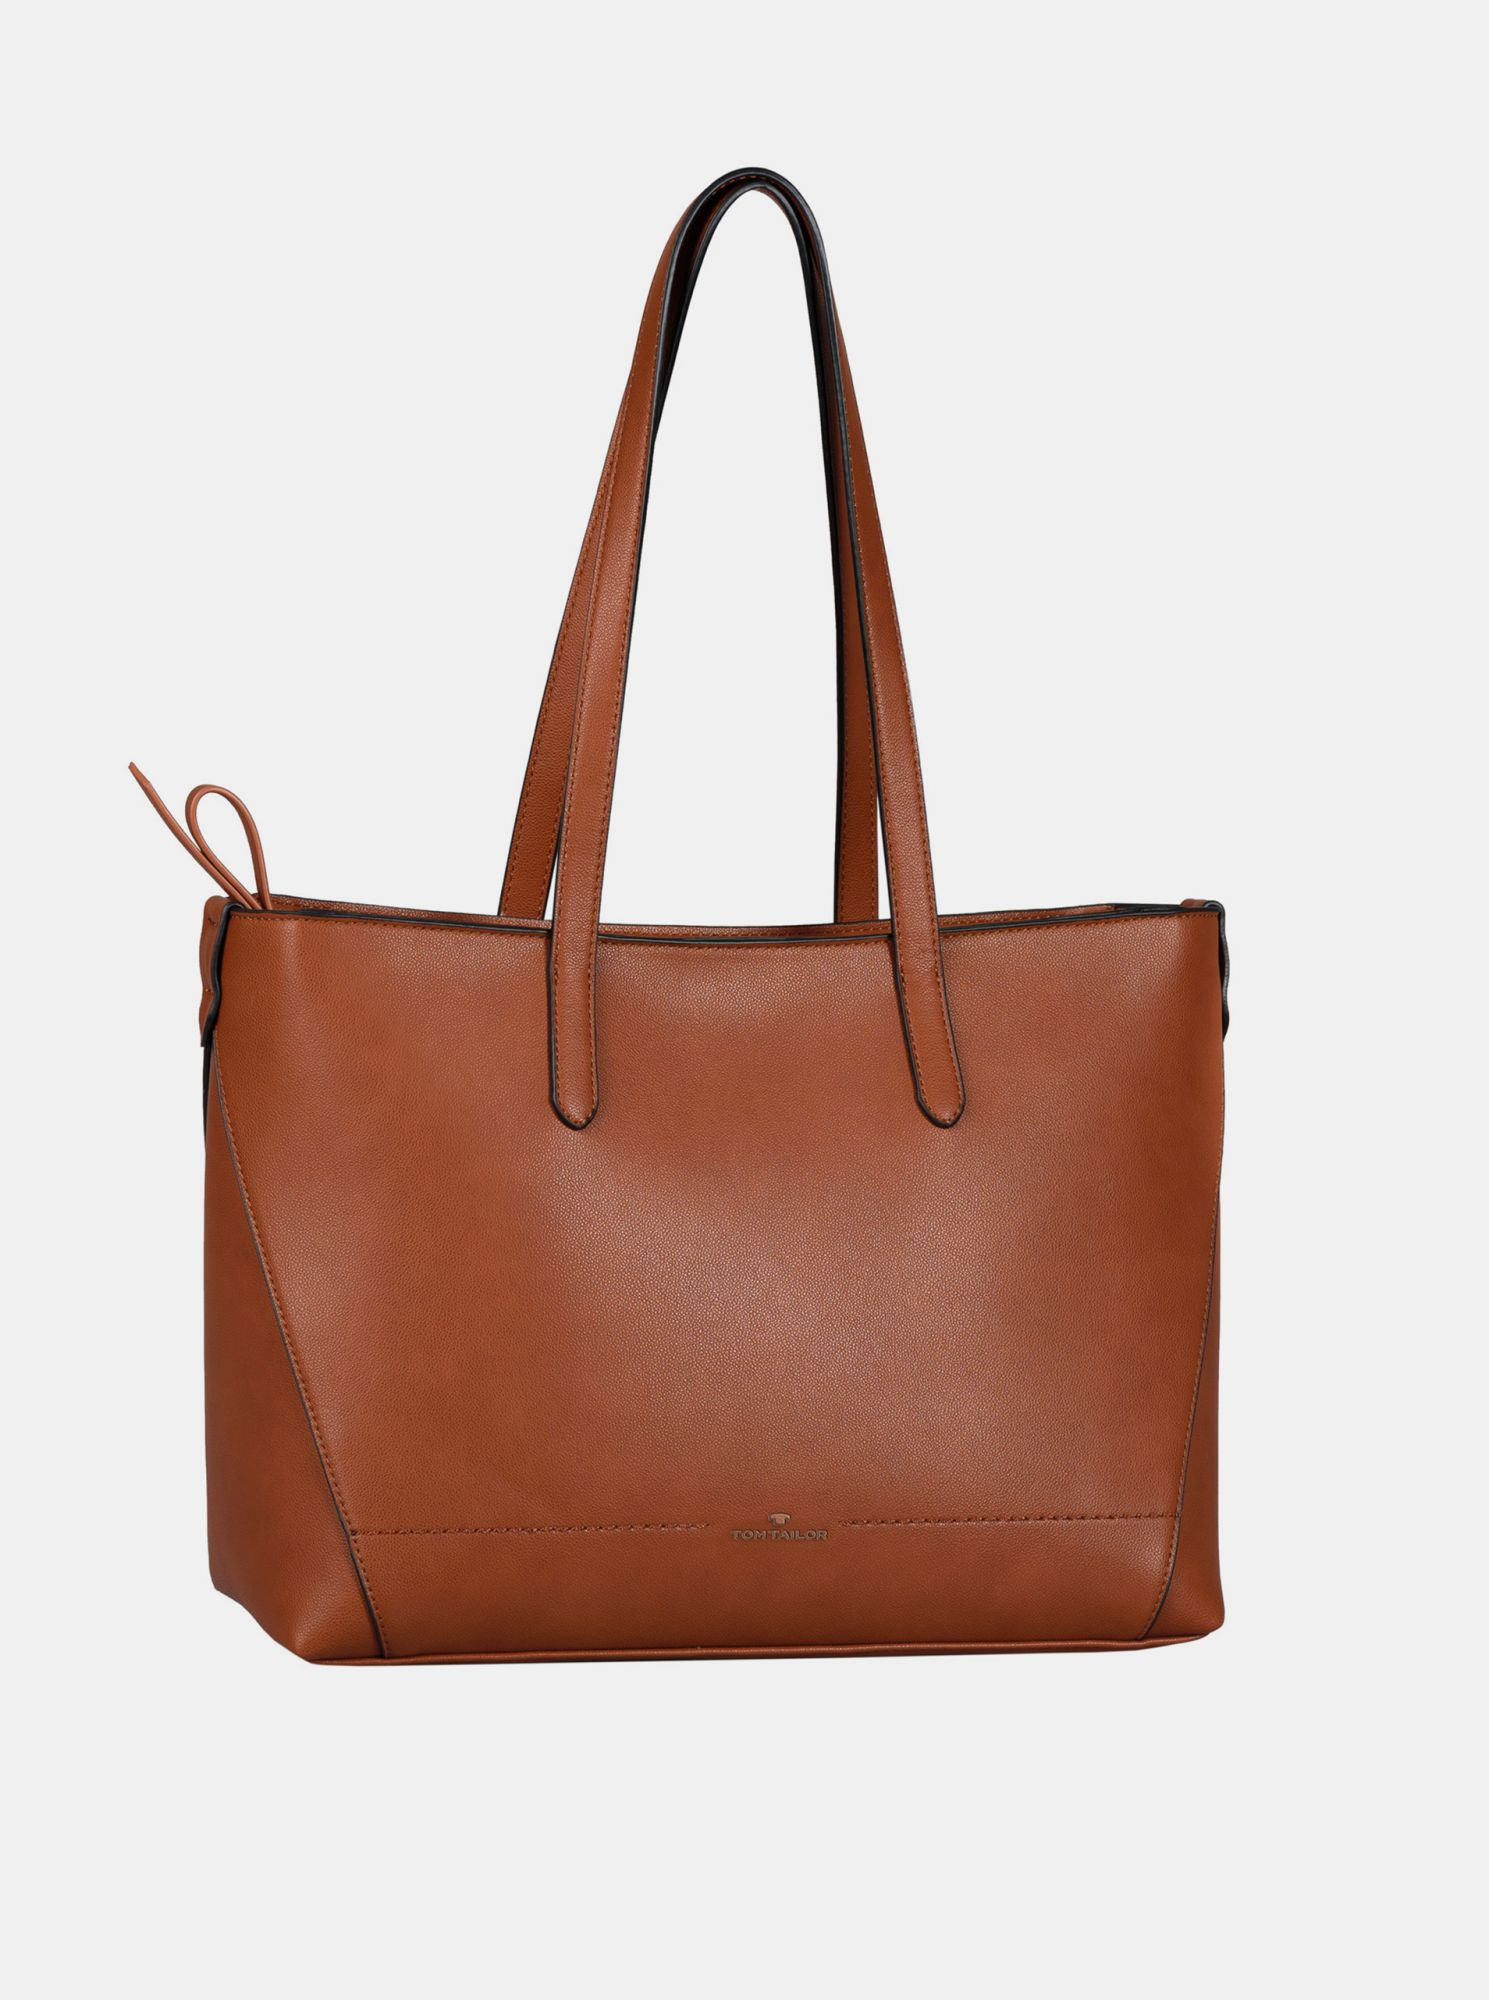 Brown Tom Tailor handbag